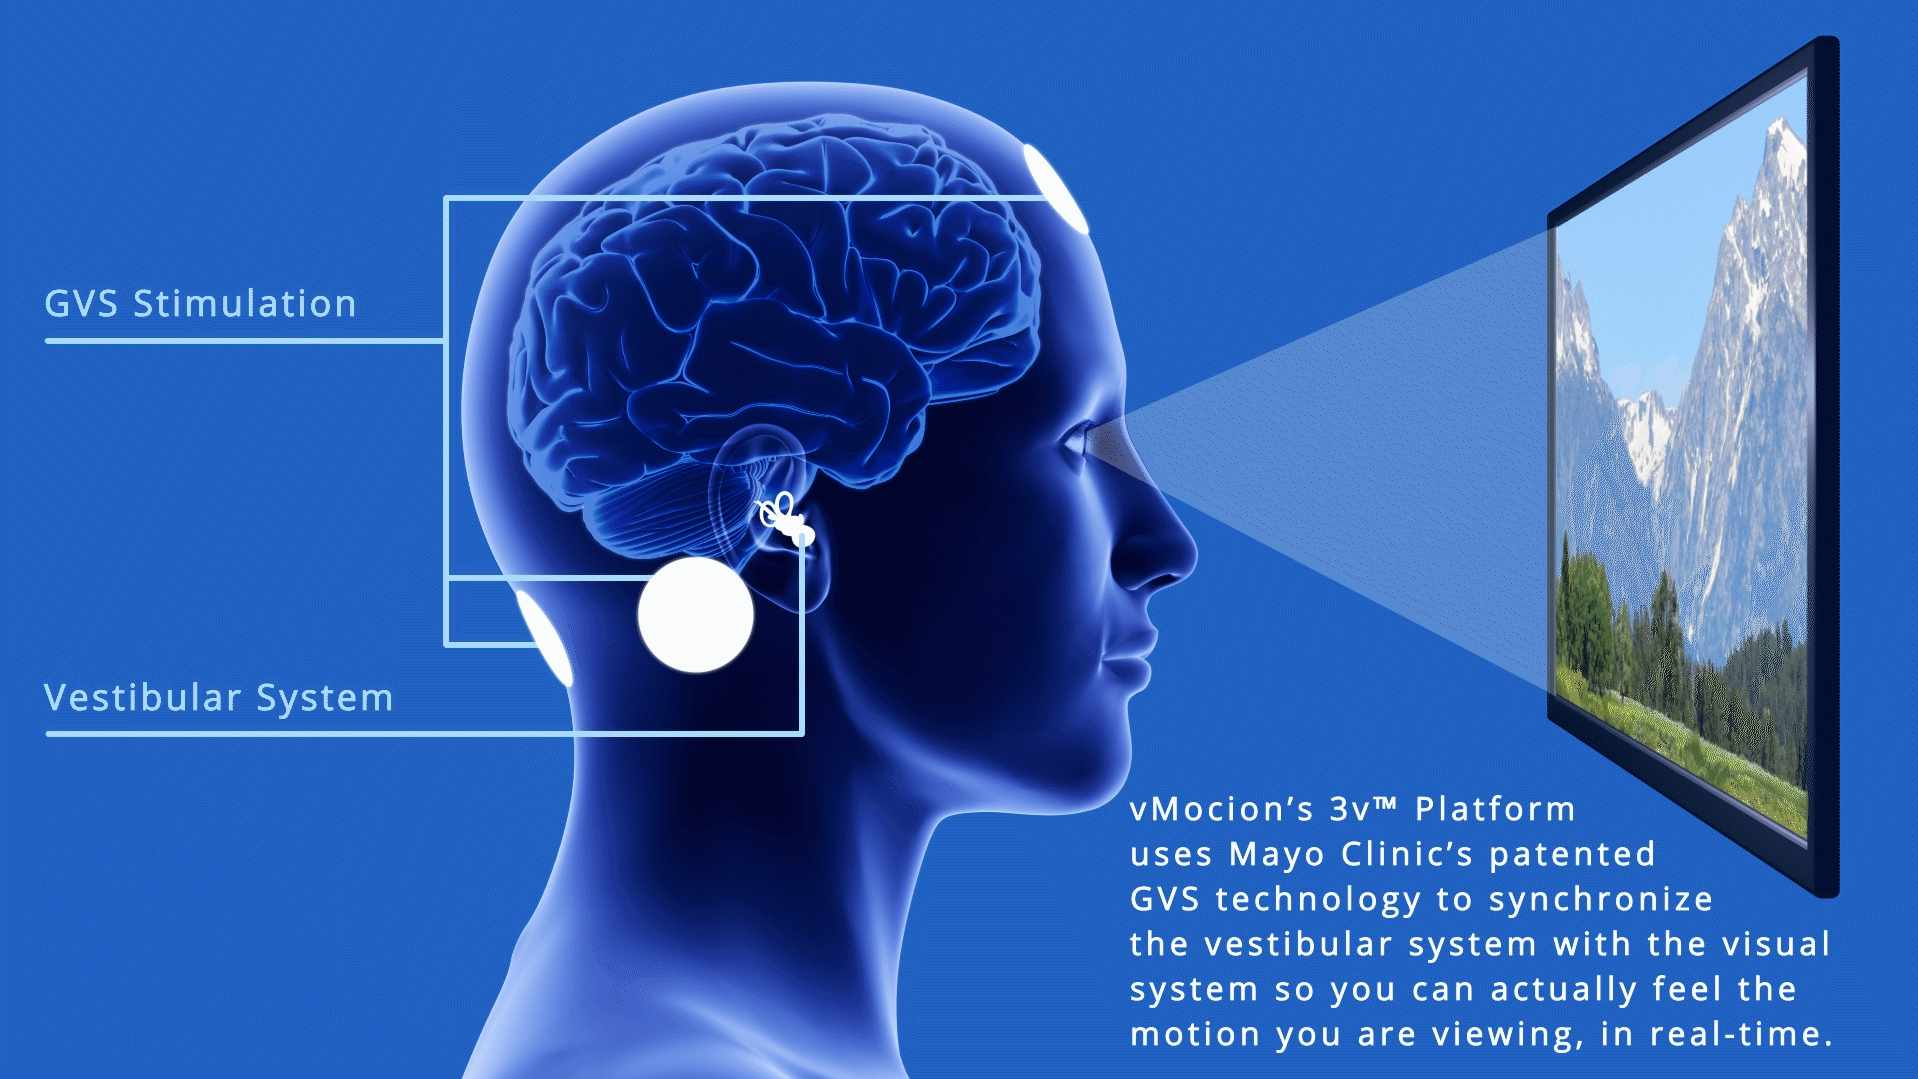 Illustration of vMocion 3v Platform attached to human brain